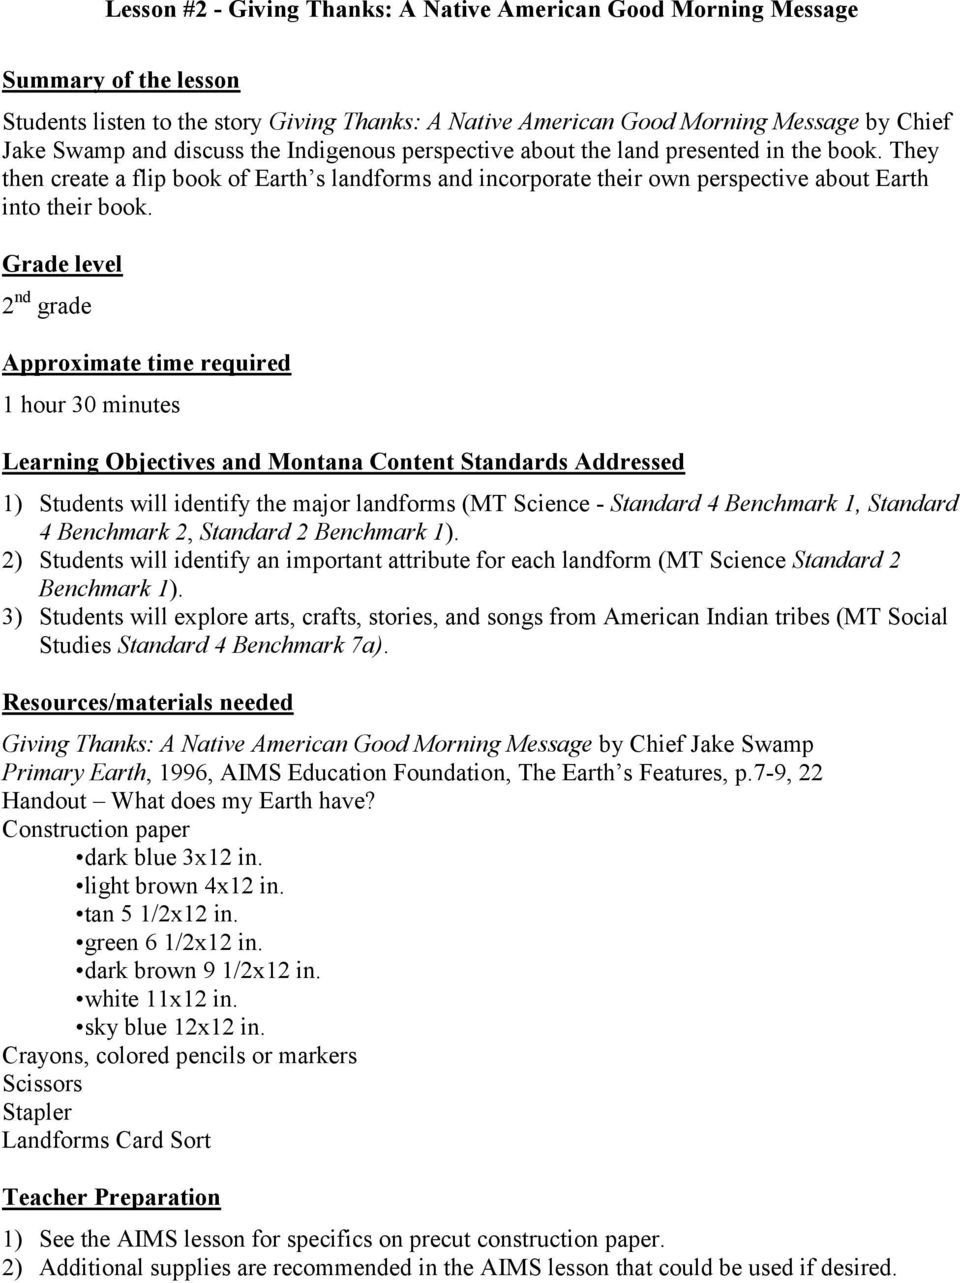 Grade level 2 nd grade Approximate time required 1 hour 30 minutes Learning Objectives and Montana Content Standards Addressed 1) Students will identify the major landforms (MT Science - Standard 4